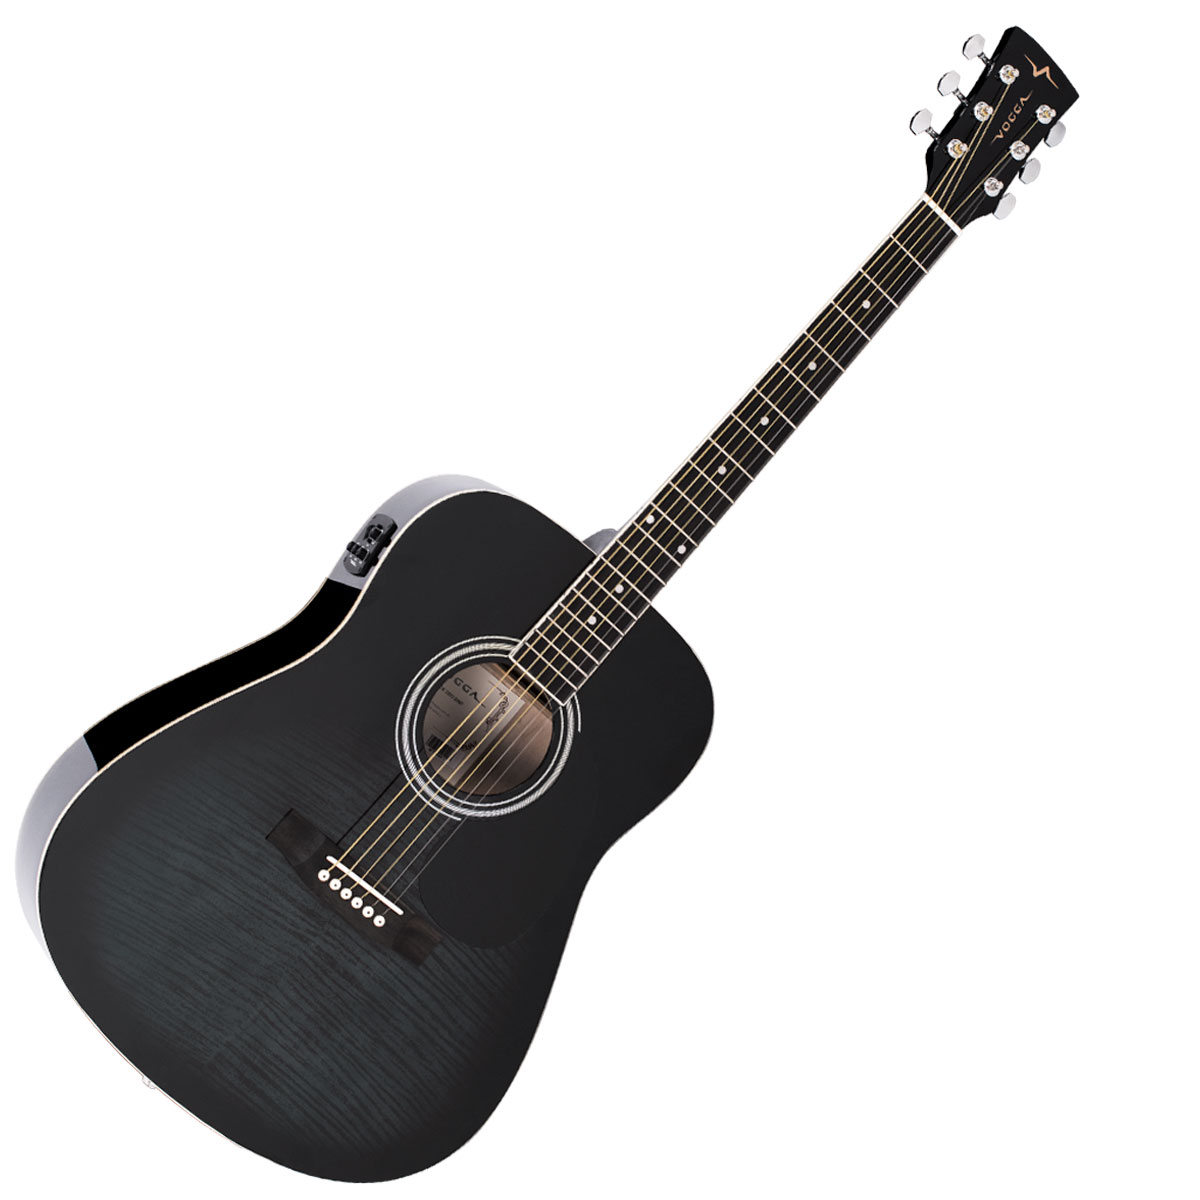 Violão Folk Elétrico VCK380 Black Maple Flamed - Vogga